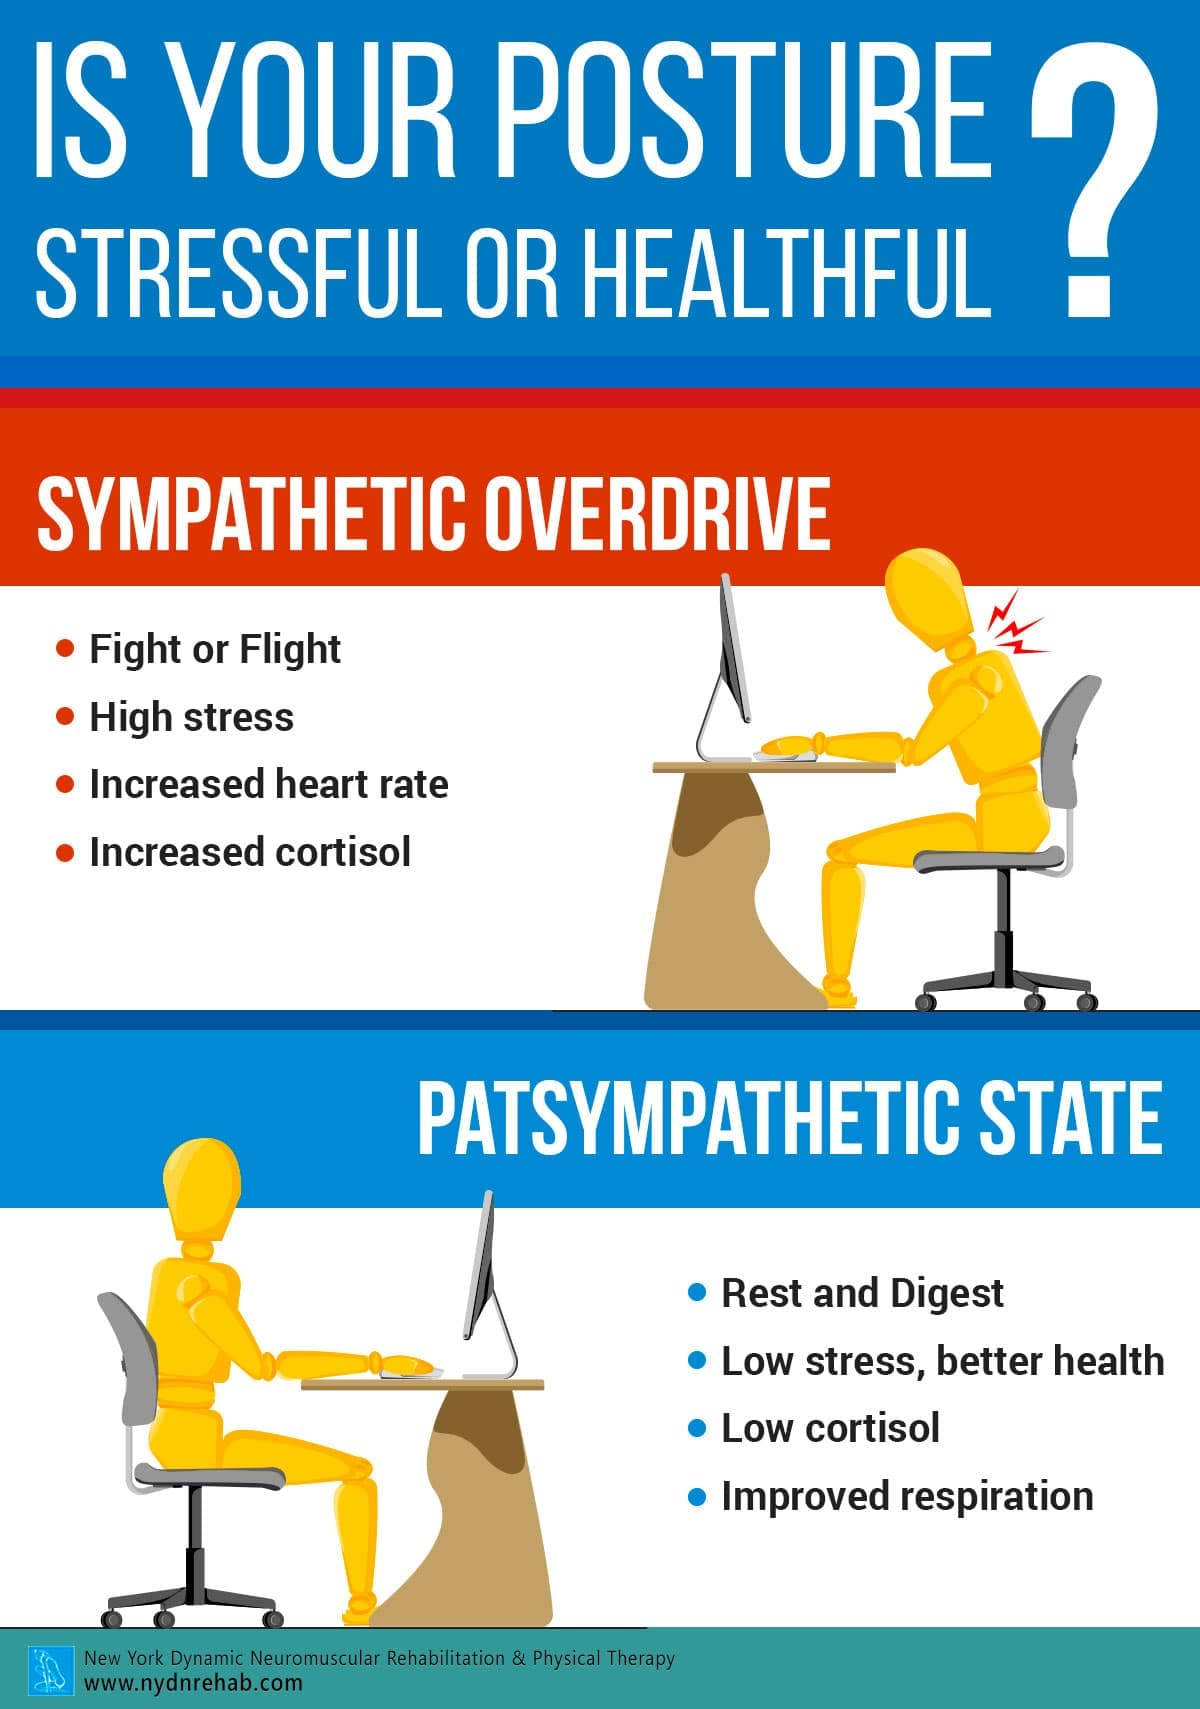 Is your posture stressful or healthful Blog